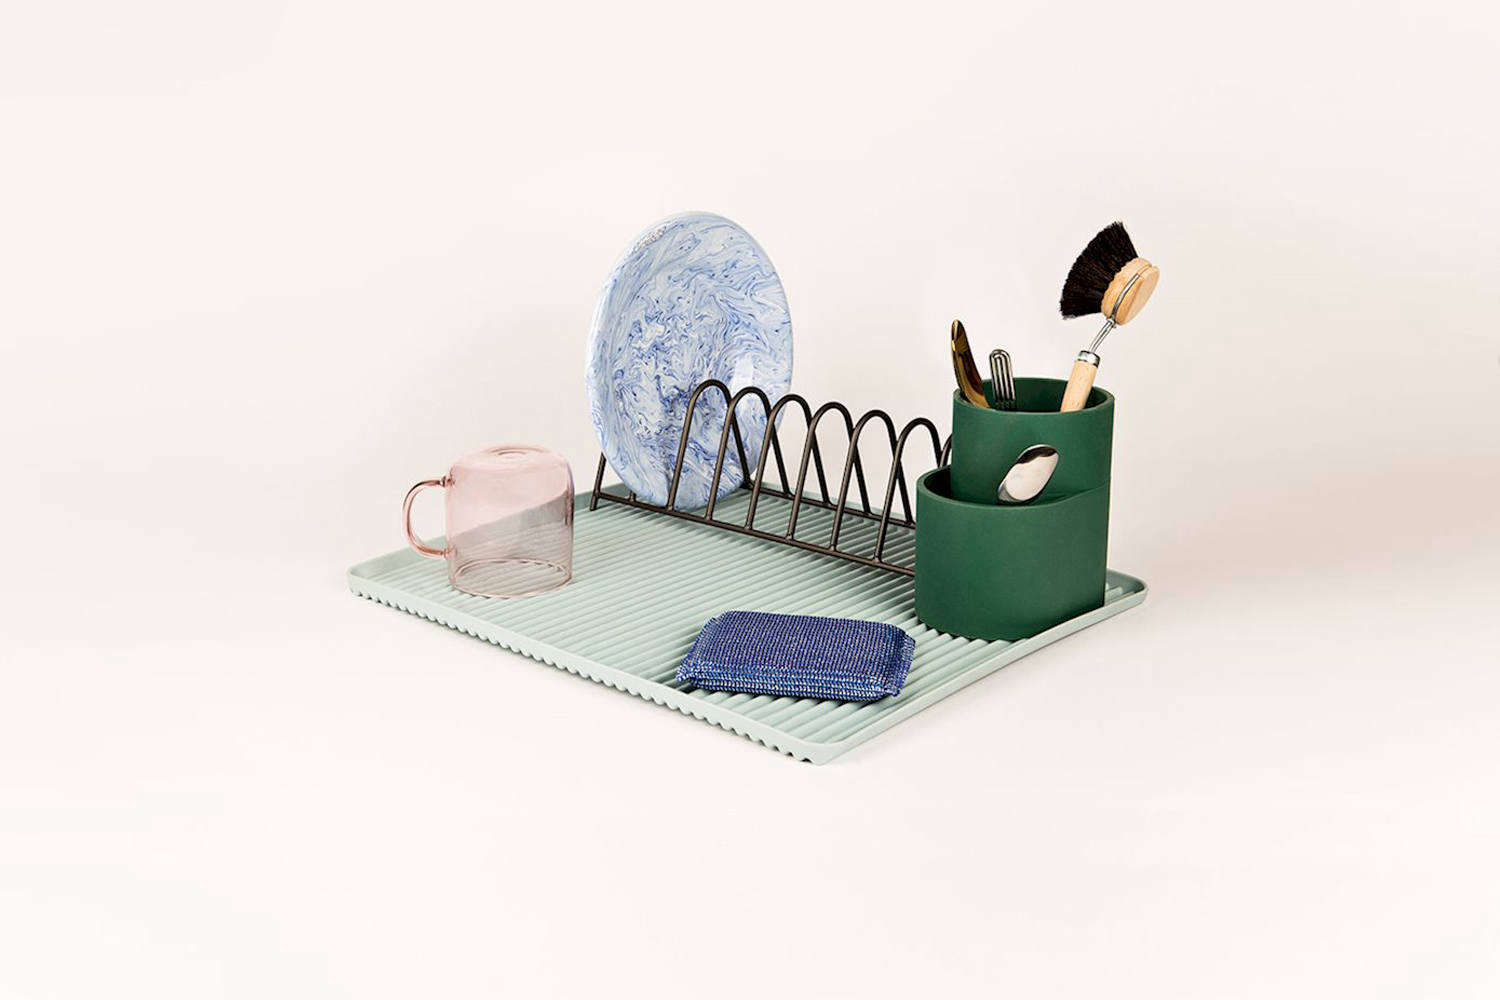 New from Hay, the Dish Drainer set is made up of three components: a Cup, Rack, and Tray. Each comes in a variety of colors and is available through Hay stockists.